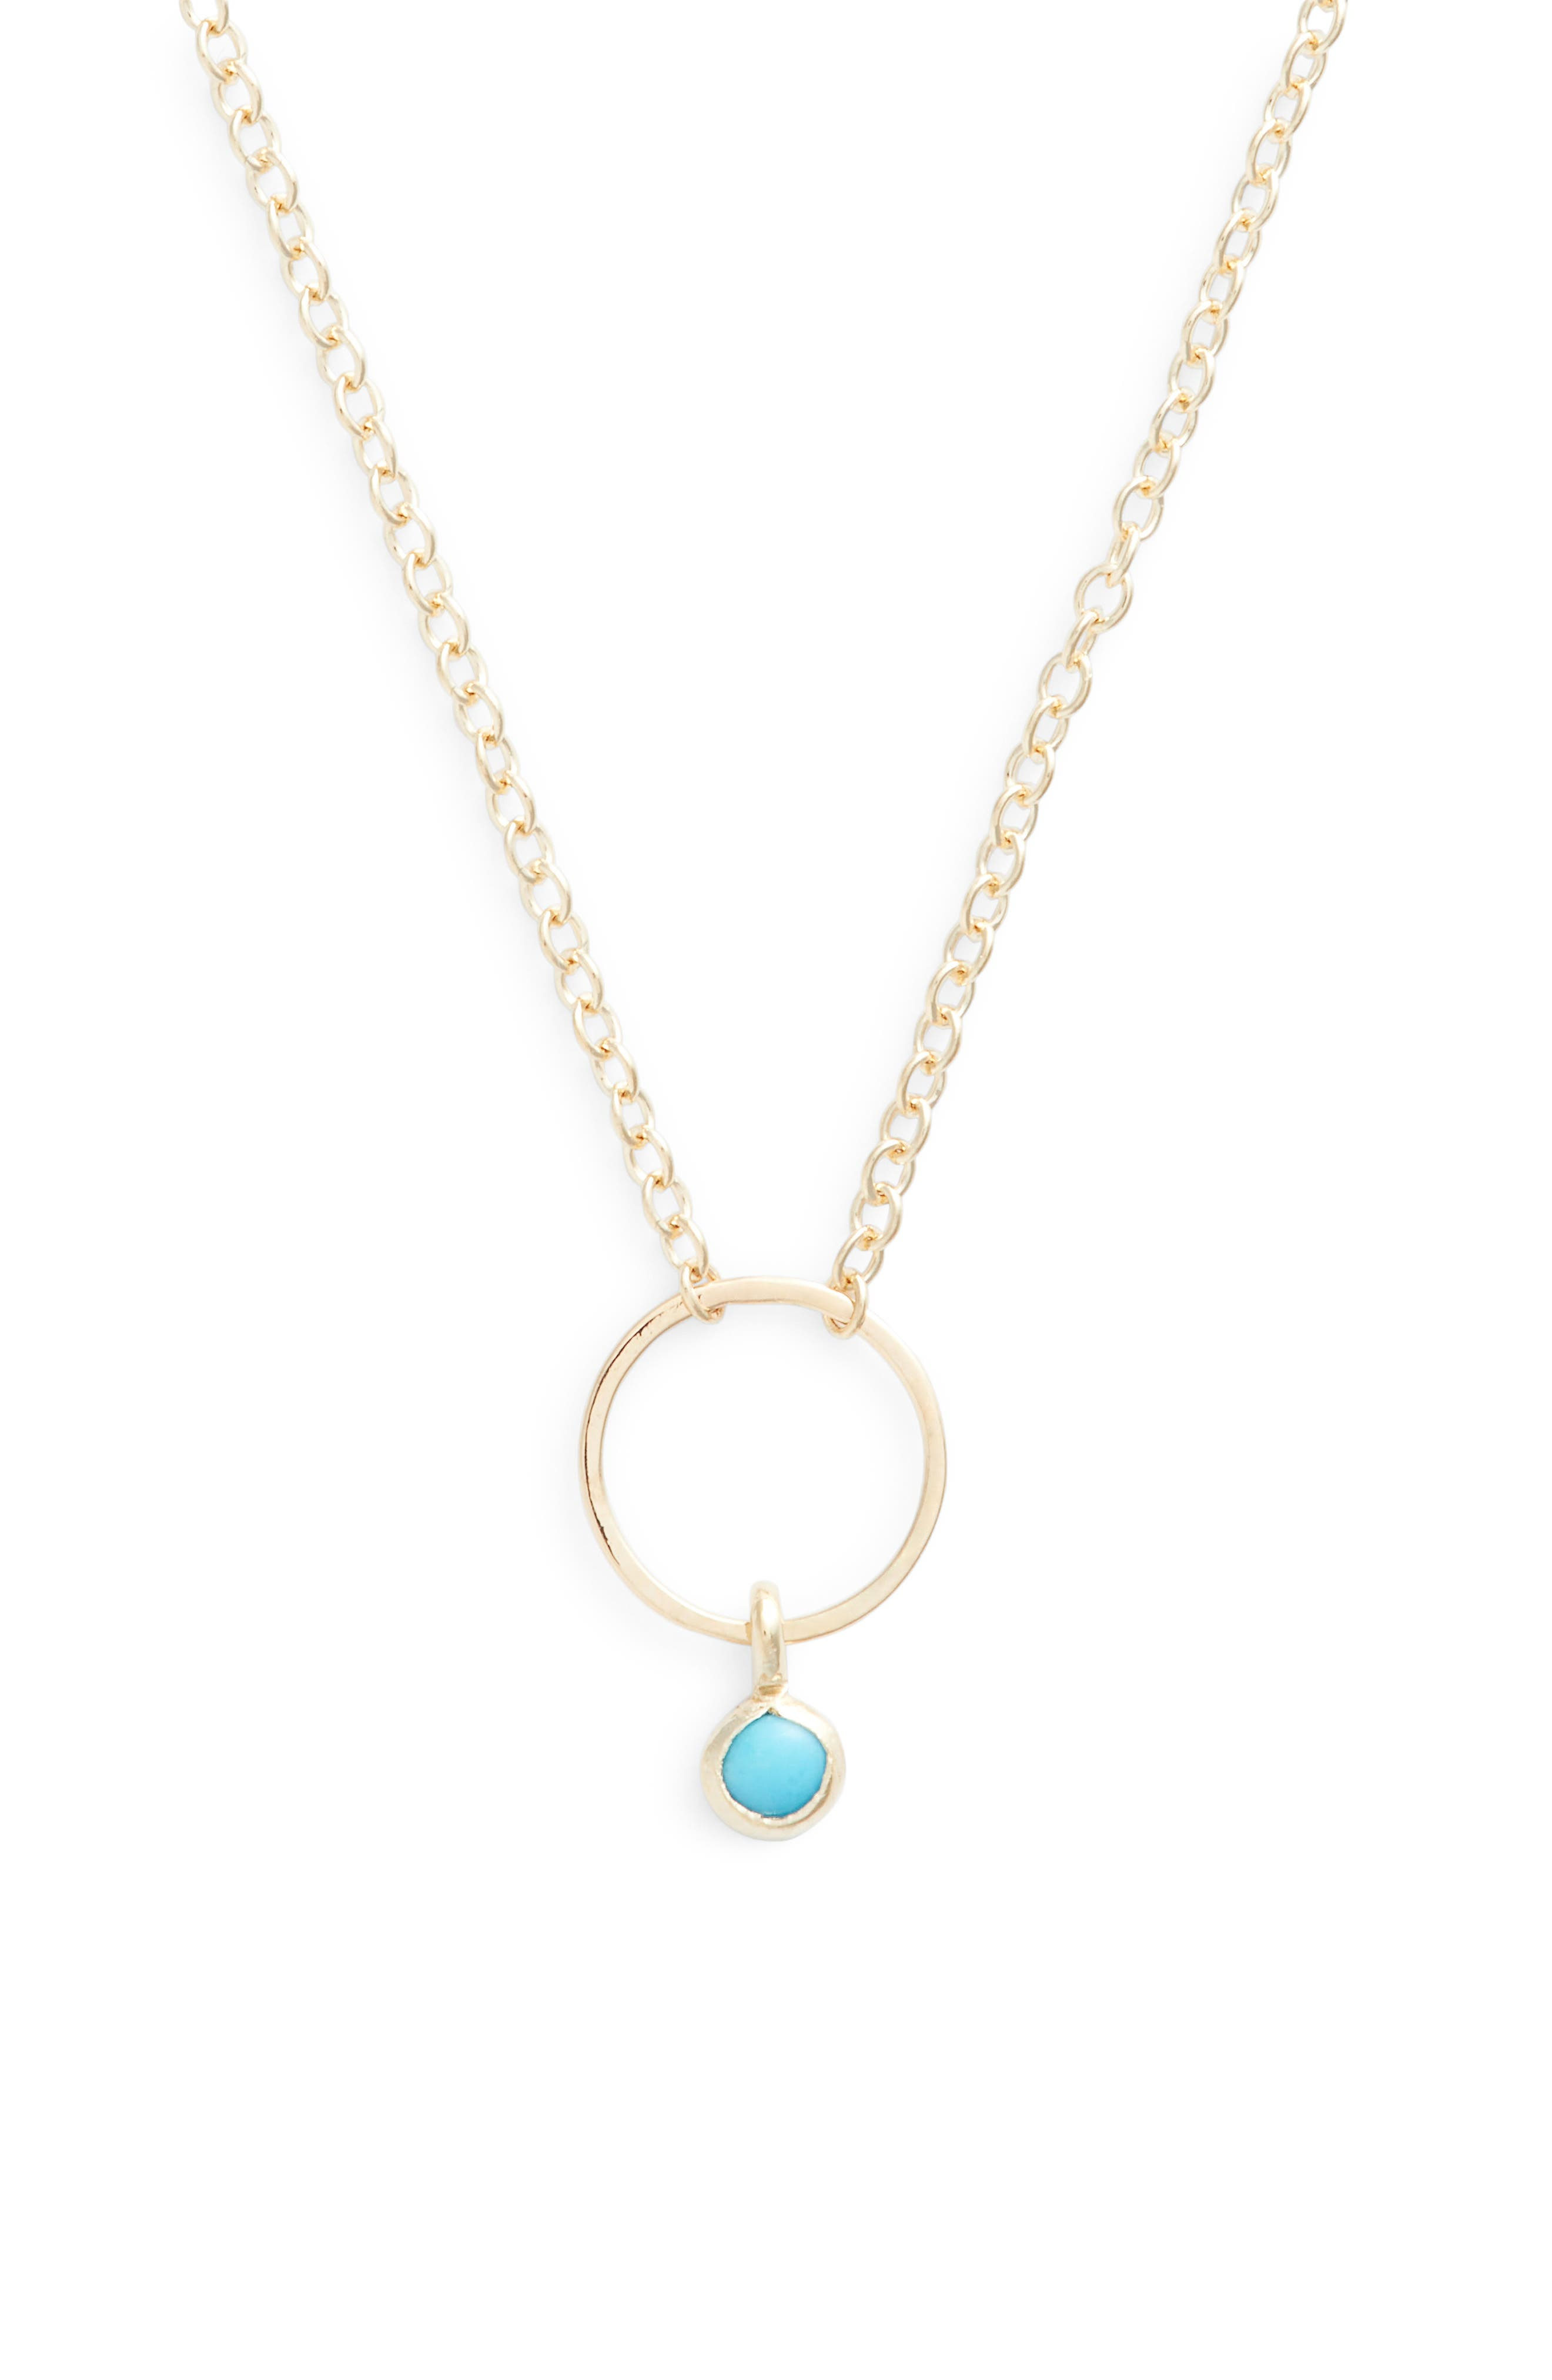 Dangling Turquoise Circle Pendant Necklace,                             Alternate thumbnail 2, color,                             Yellow Gold